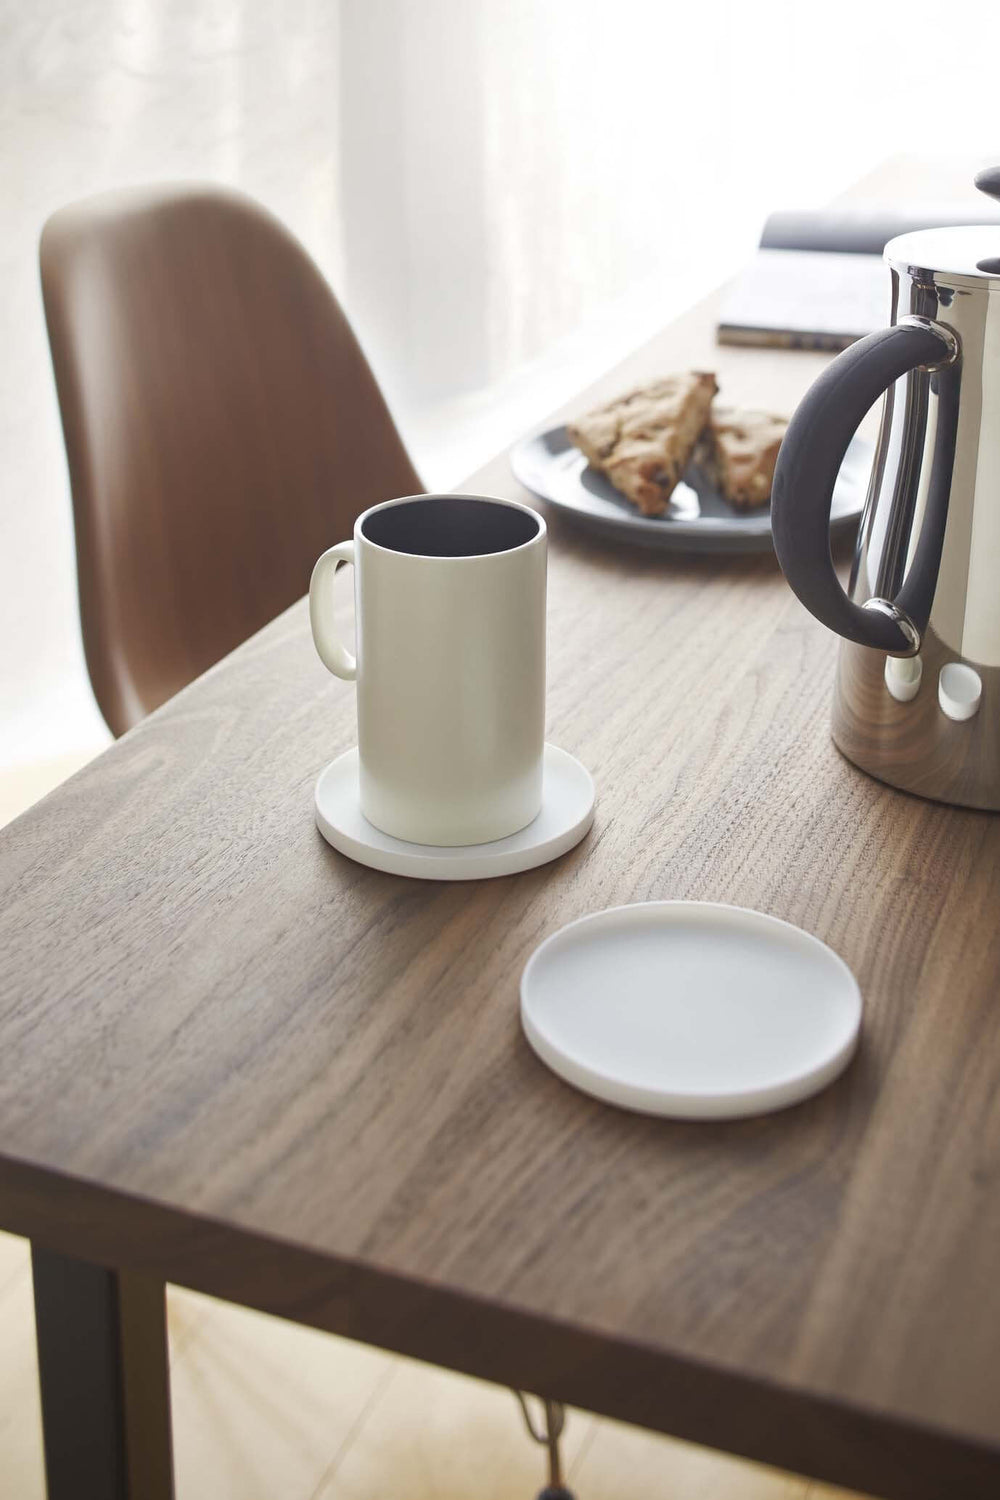 Two Yamazaki white round coasters on the wooden table. One of them hold a white mug